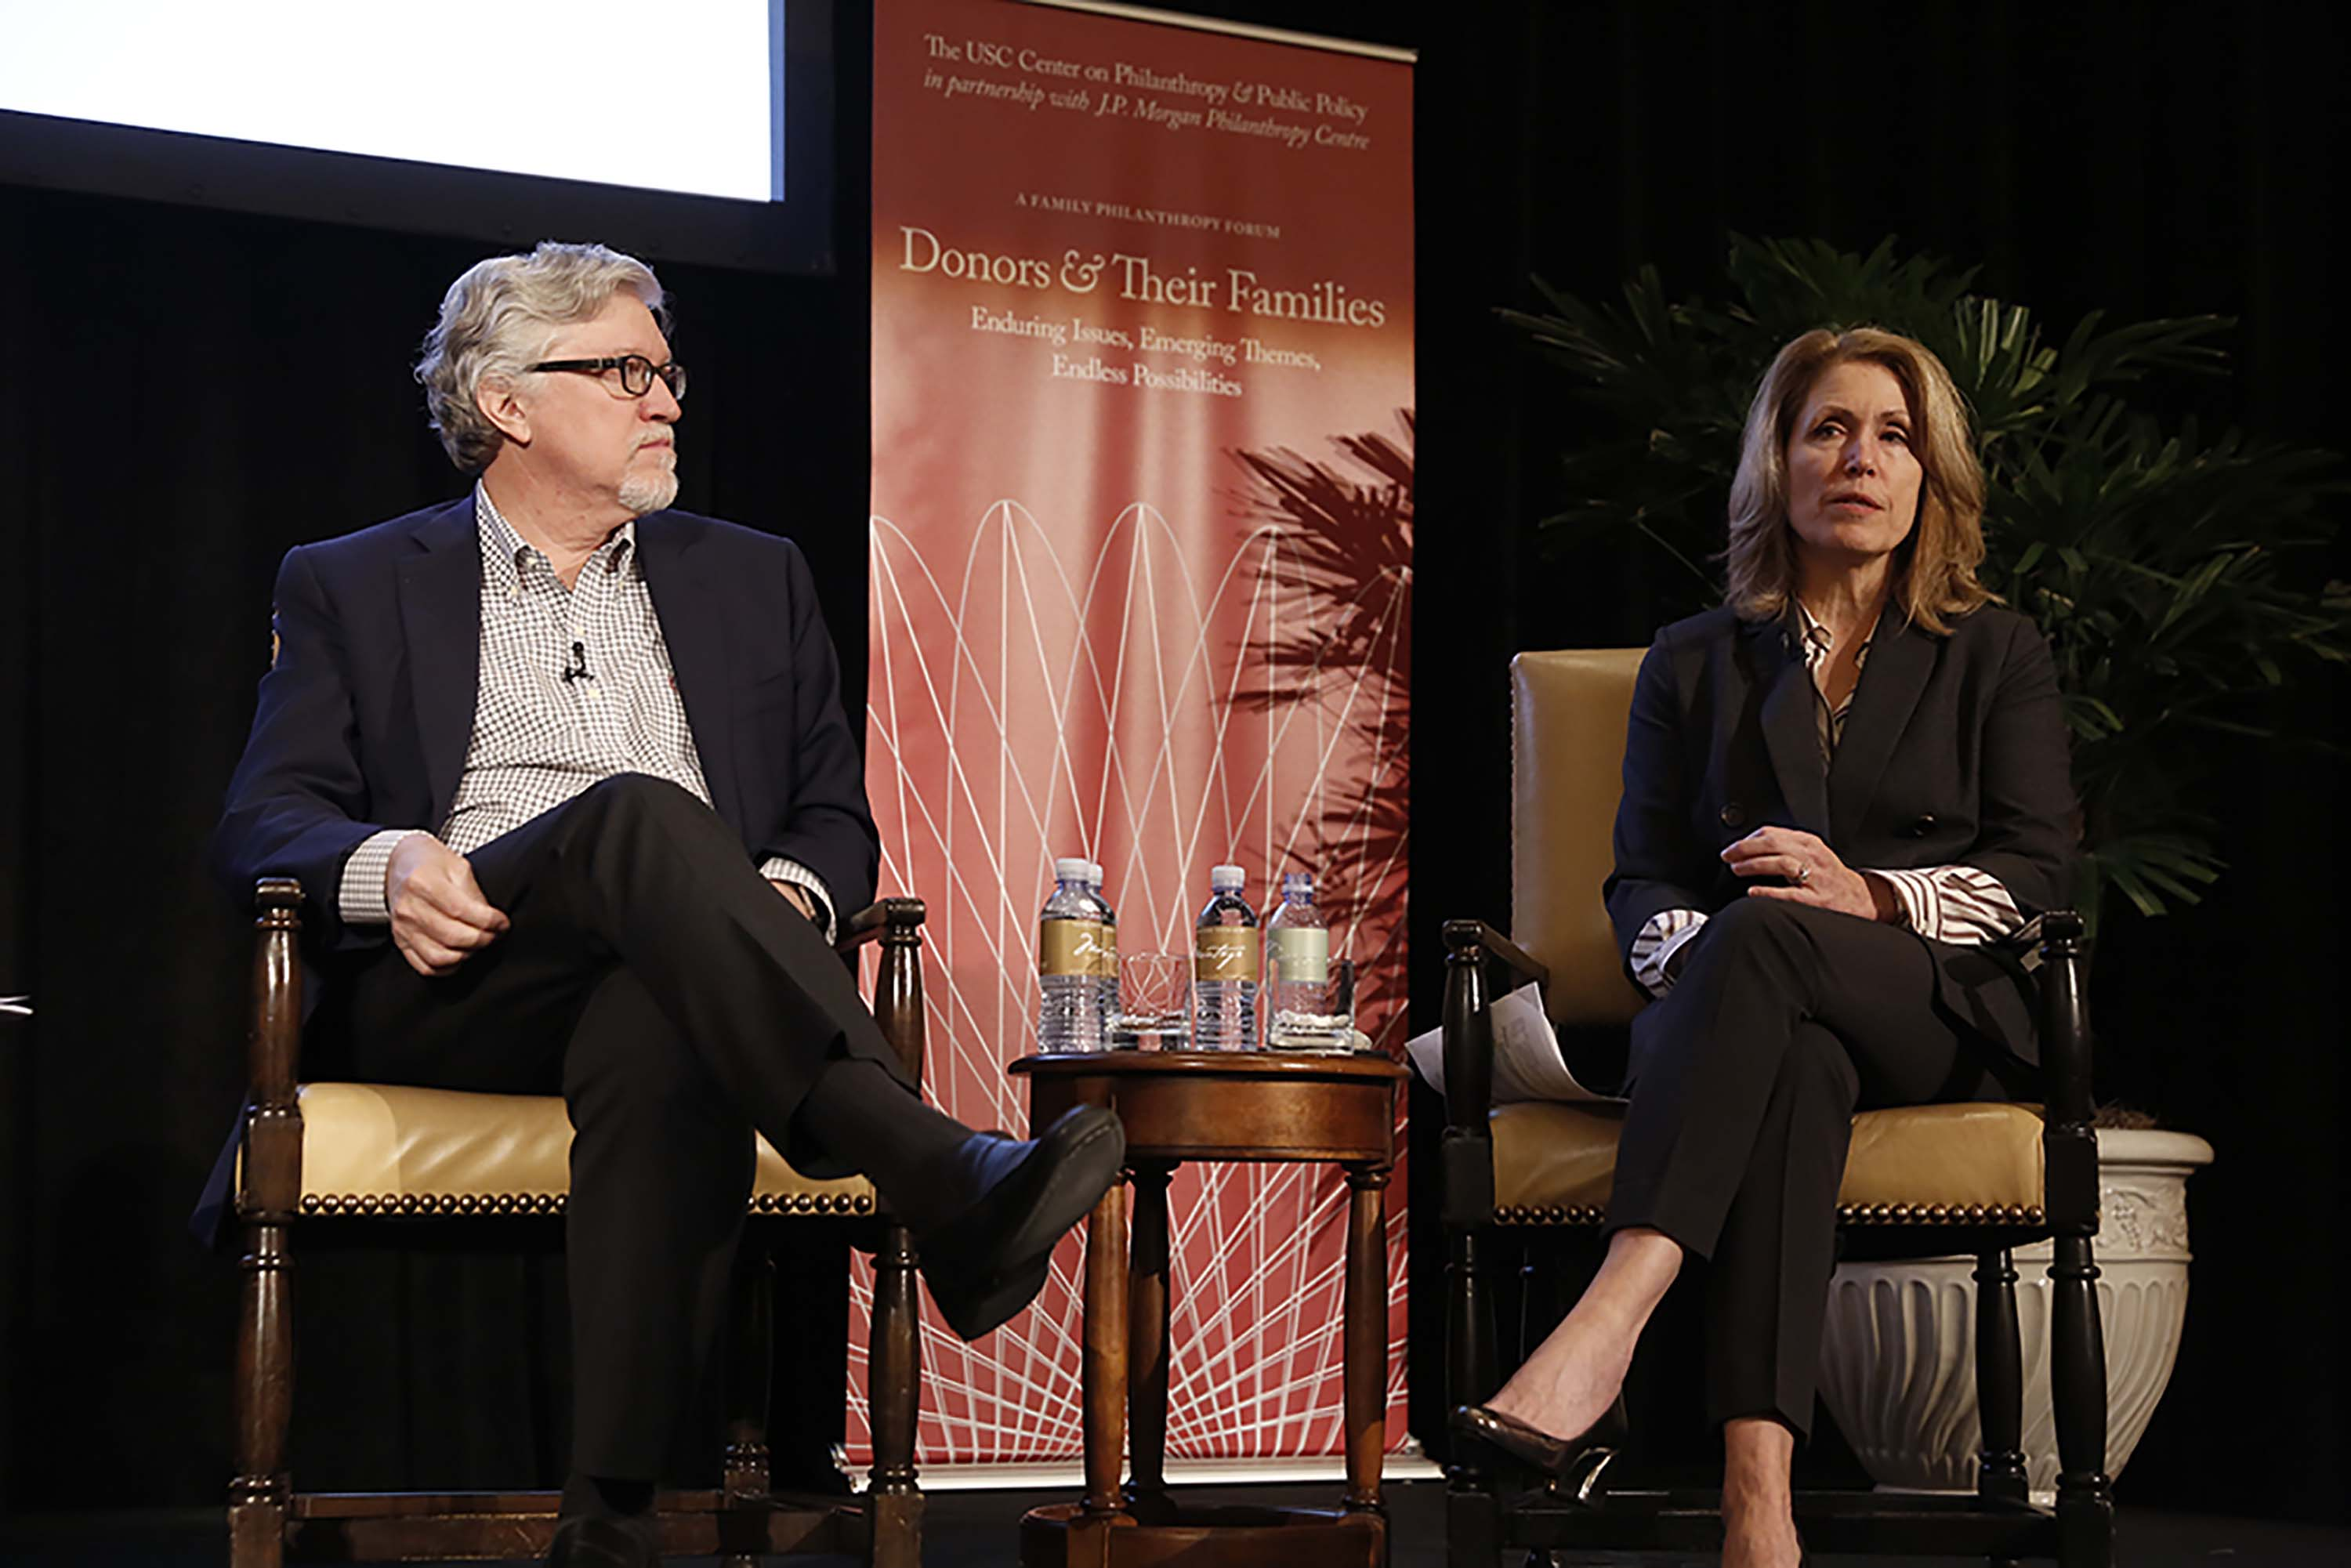 3/9/17 Beverly Hills, CA USC The Center on Philanthropy and Public Policy Donors & Their Families Photo by: Steve Cohn www.stevecohnphotography.com (310) 277-2054 © 2017